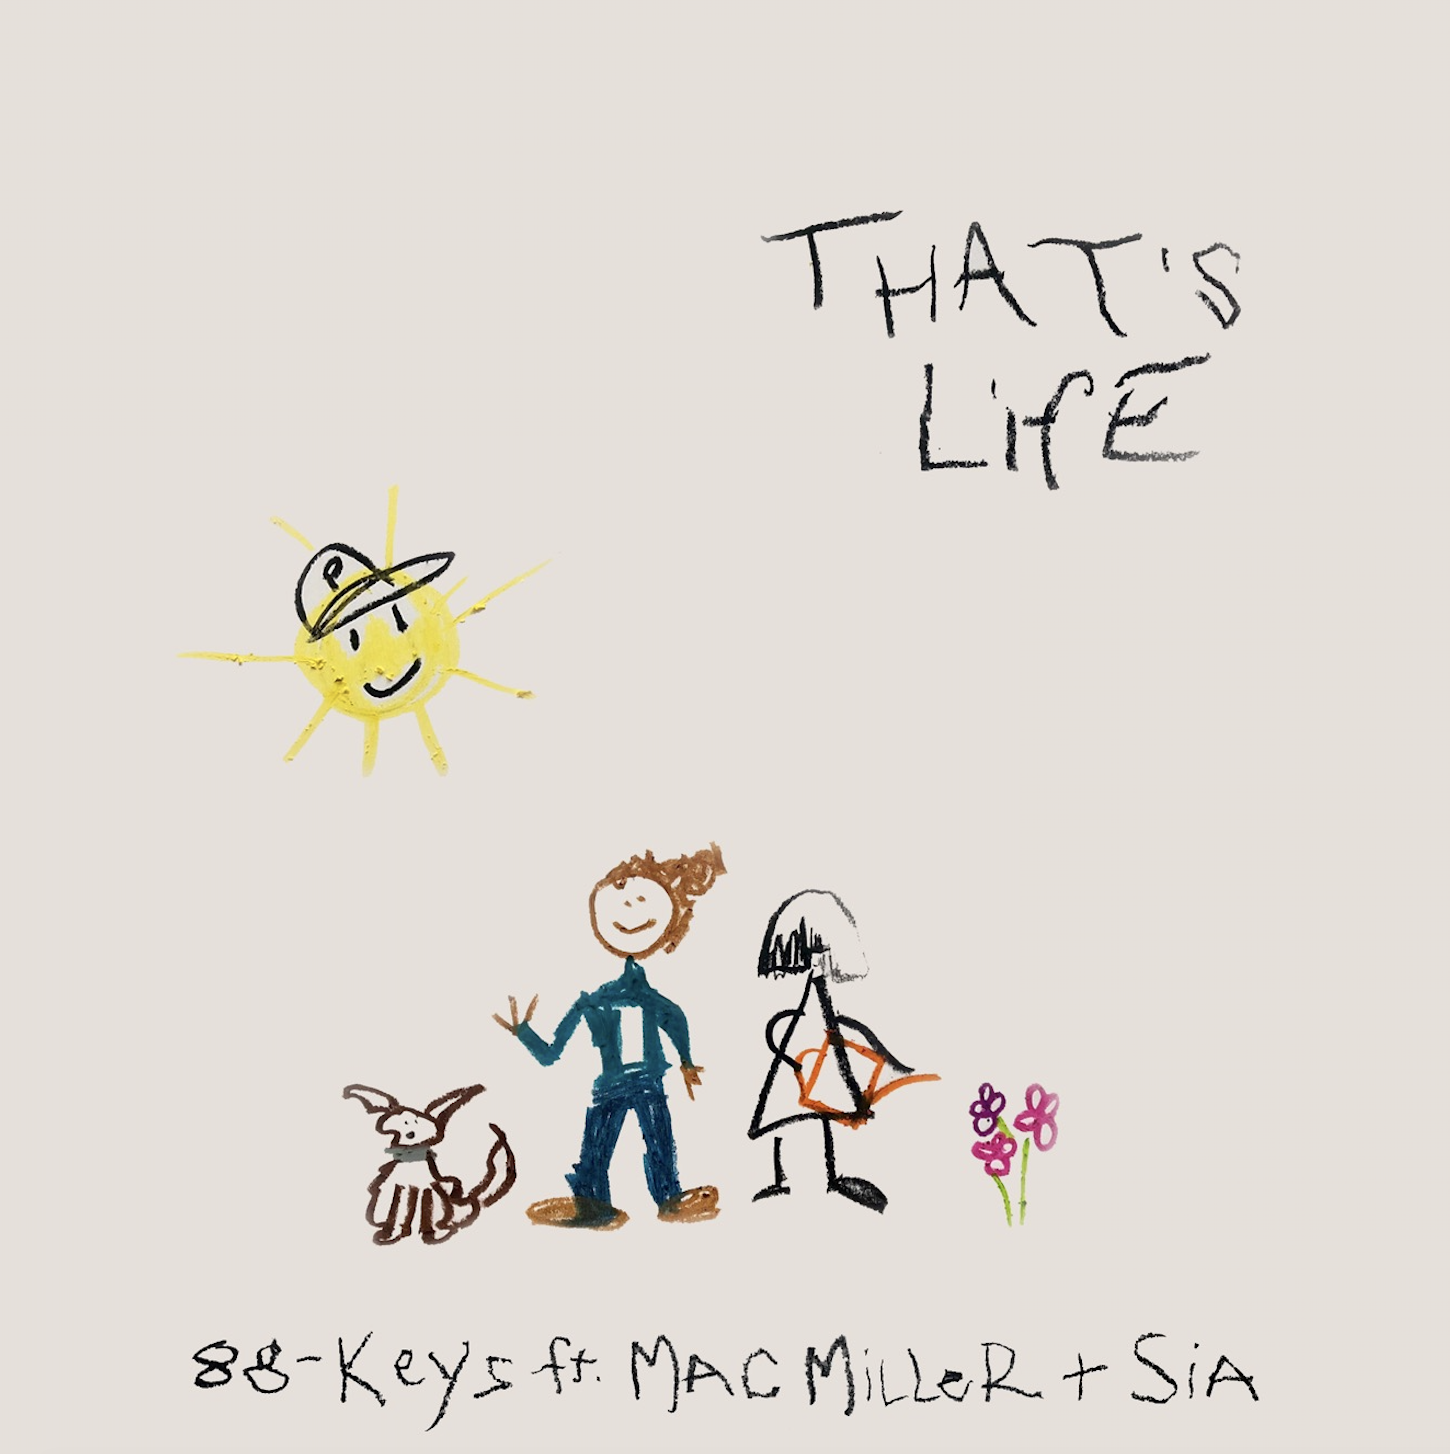 88-Keys Shares New Song 'That's Life' With Mac Miller, Sia – Rolling